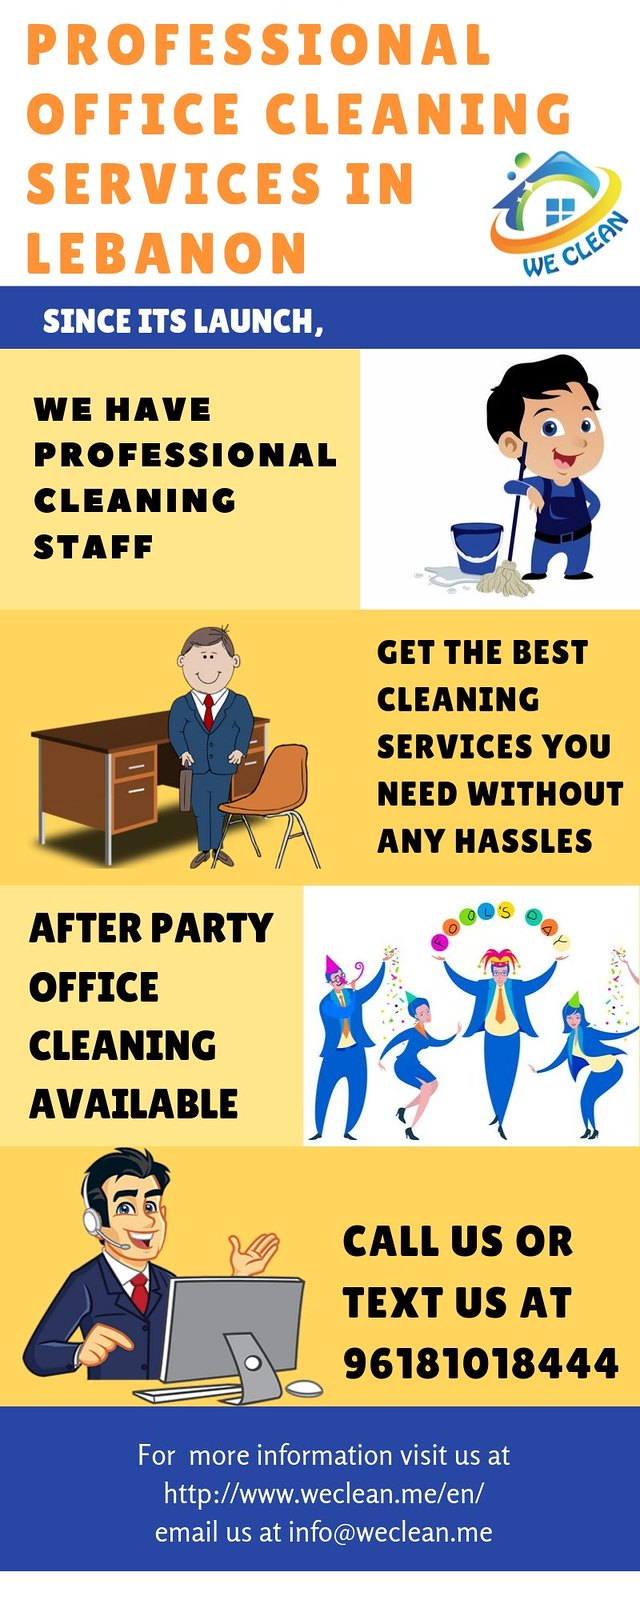 Office Cleaning Services in Lebanon | Professional Cleaners in Lebanon